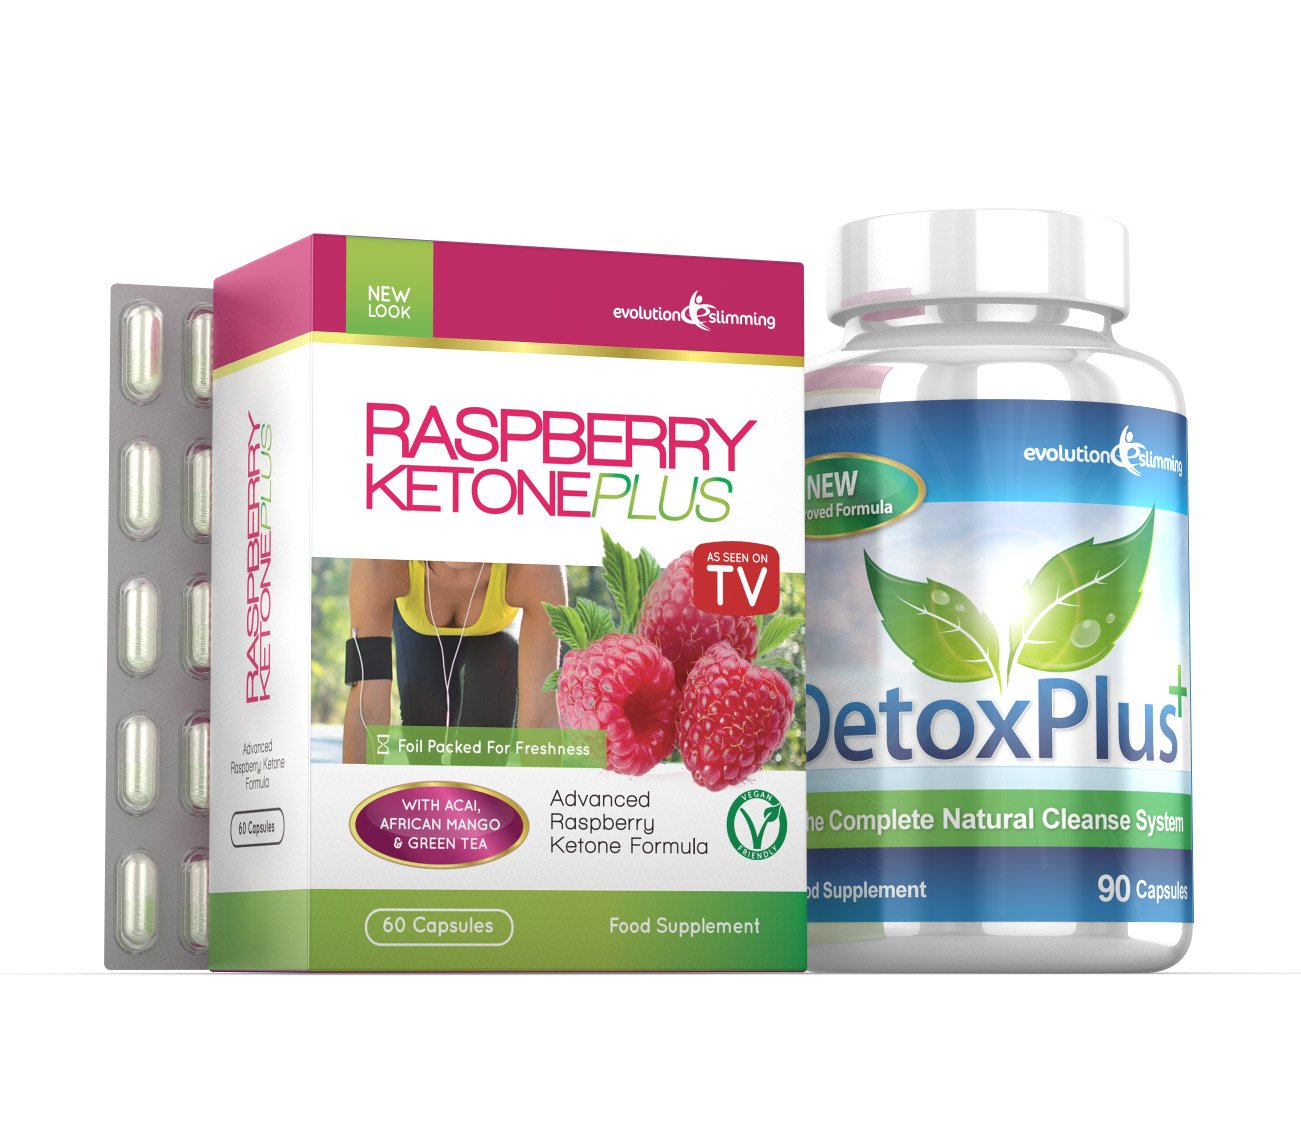 Raspberry Ketone Plus Detox Combo Pack